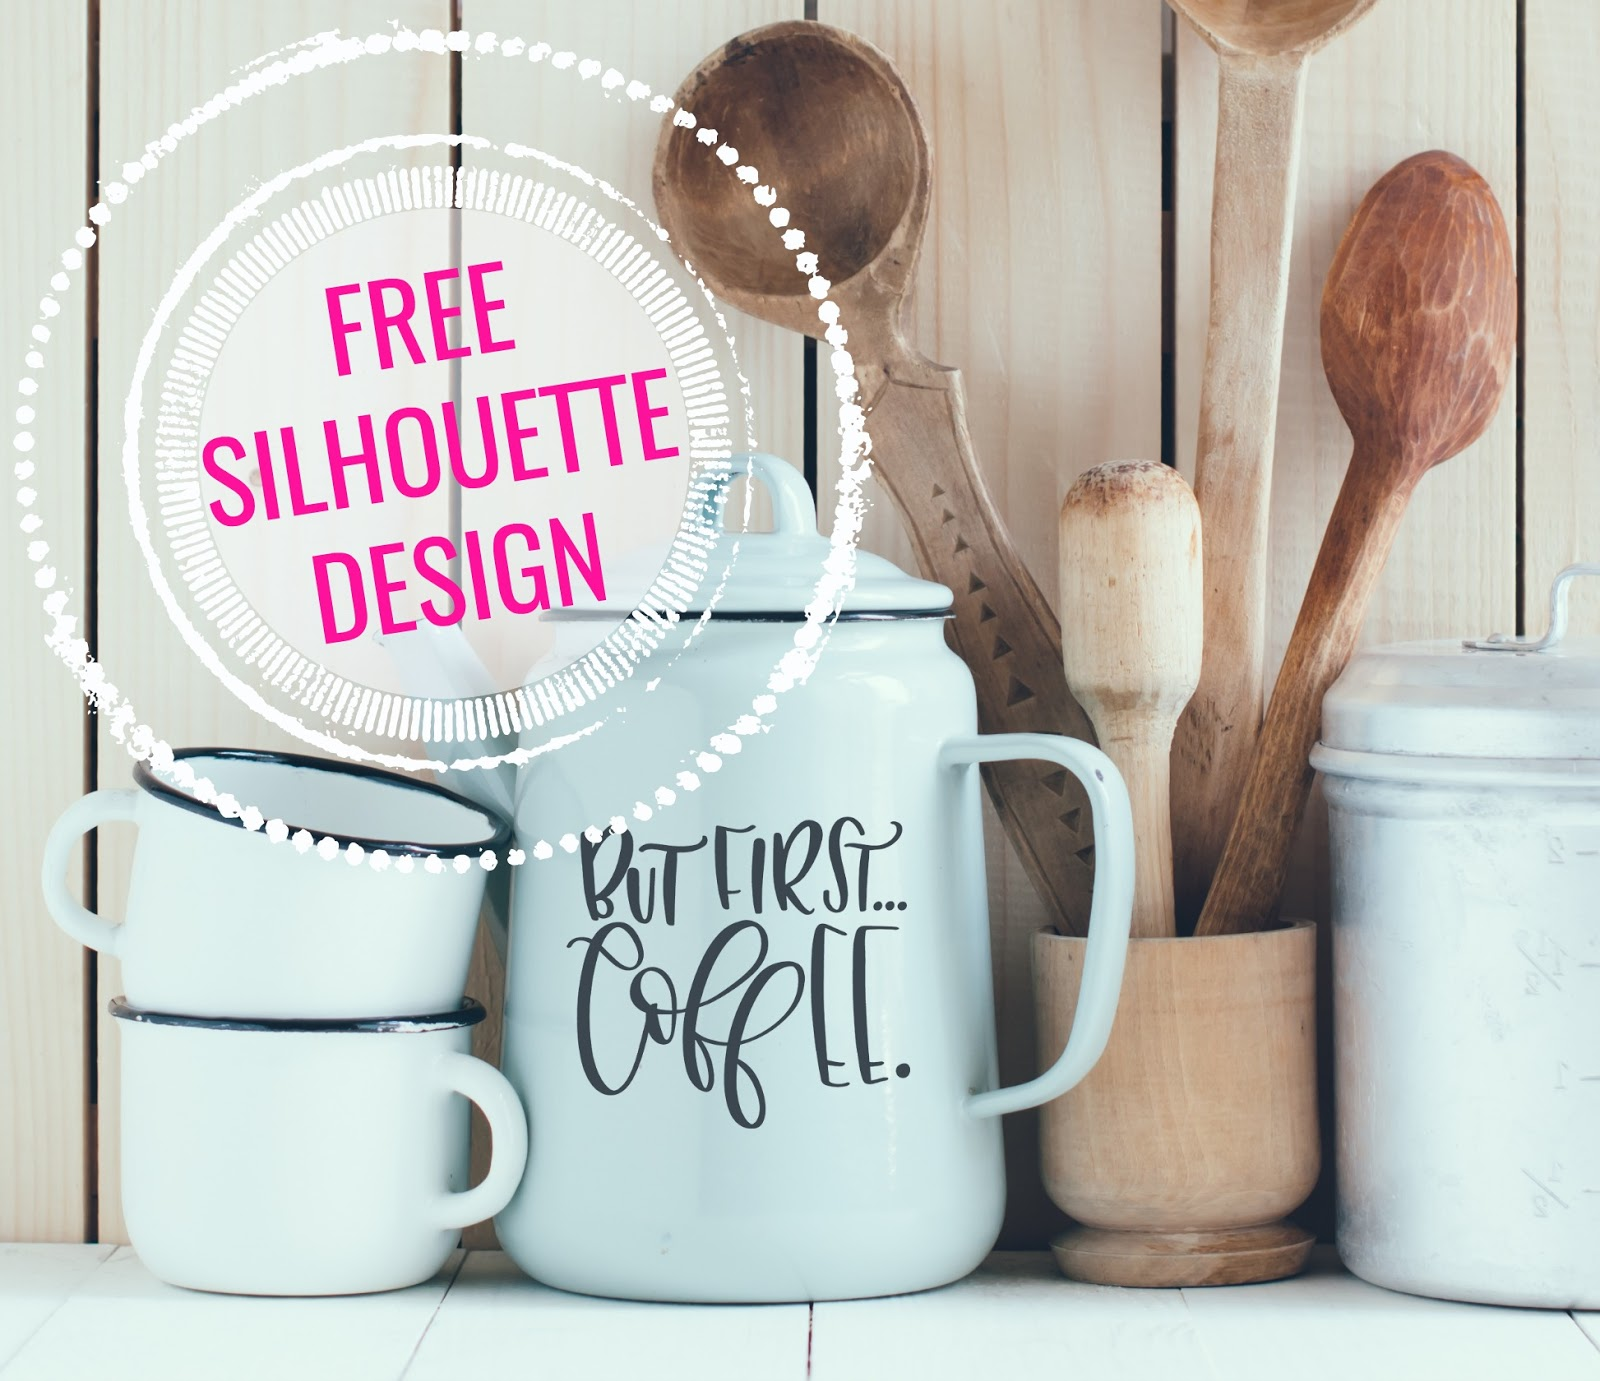 But First Coffee Free Silhouette Design Silhouette School